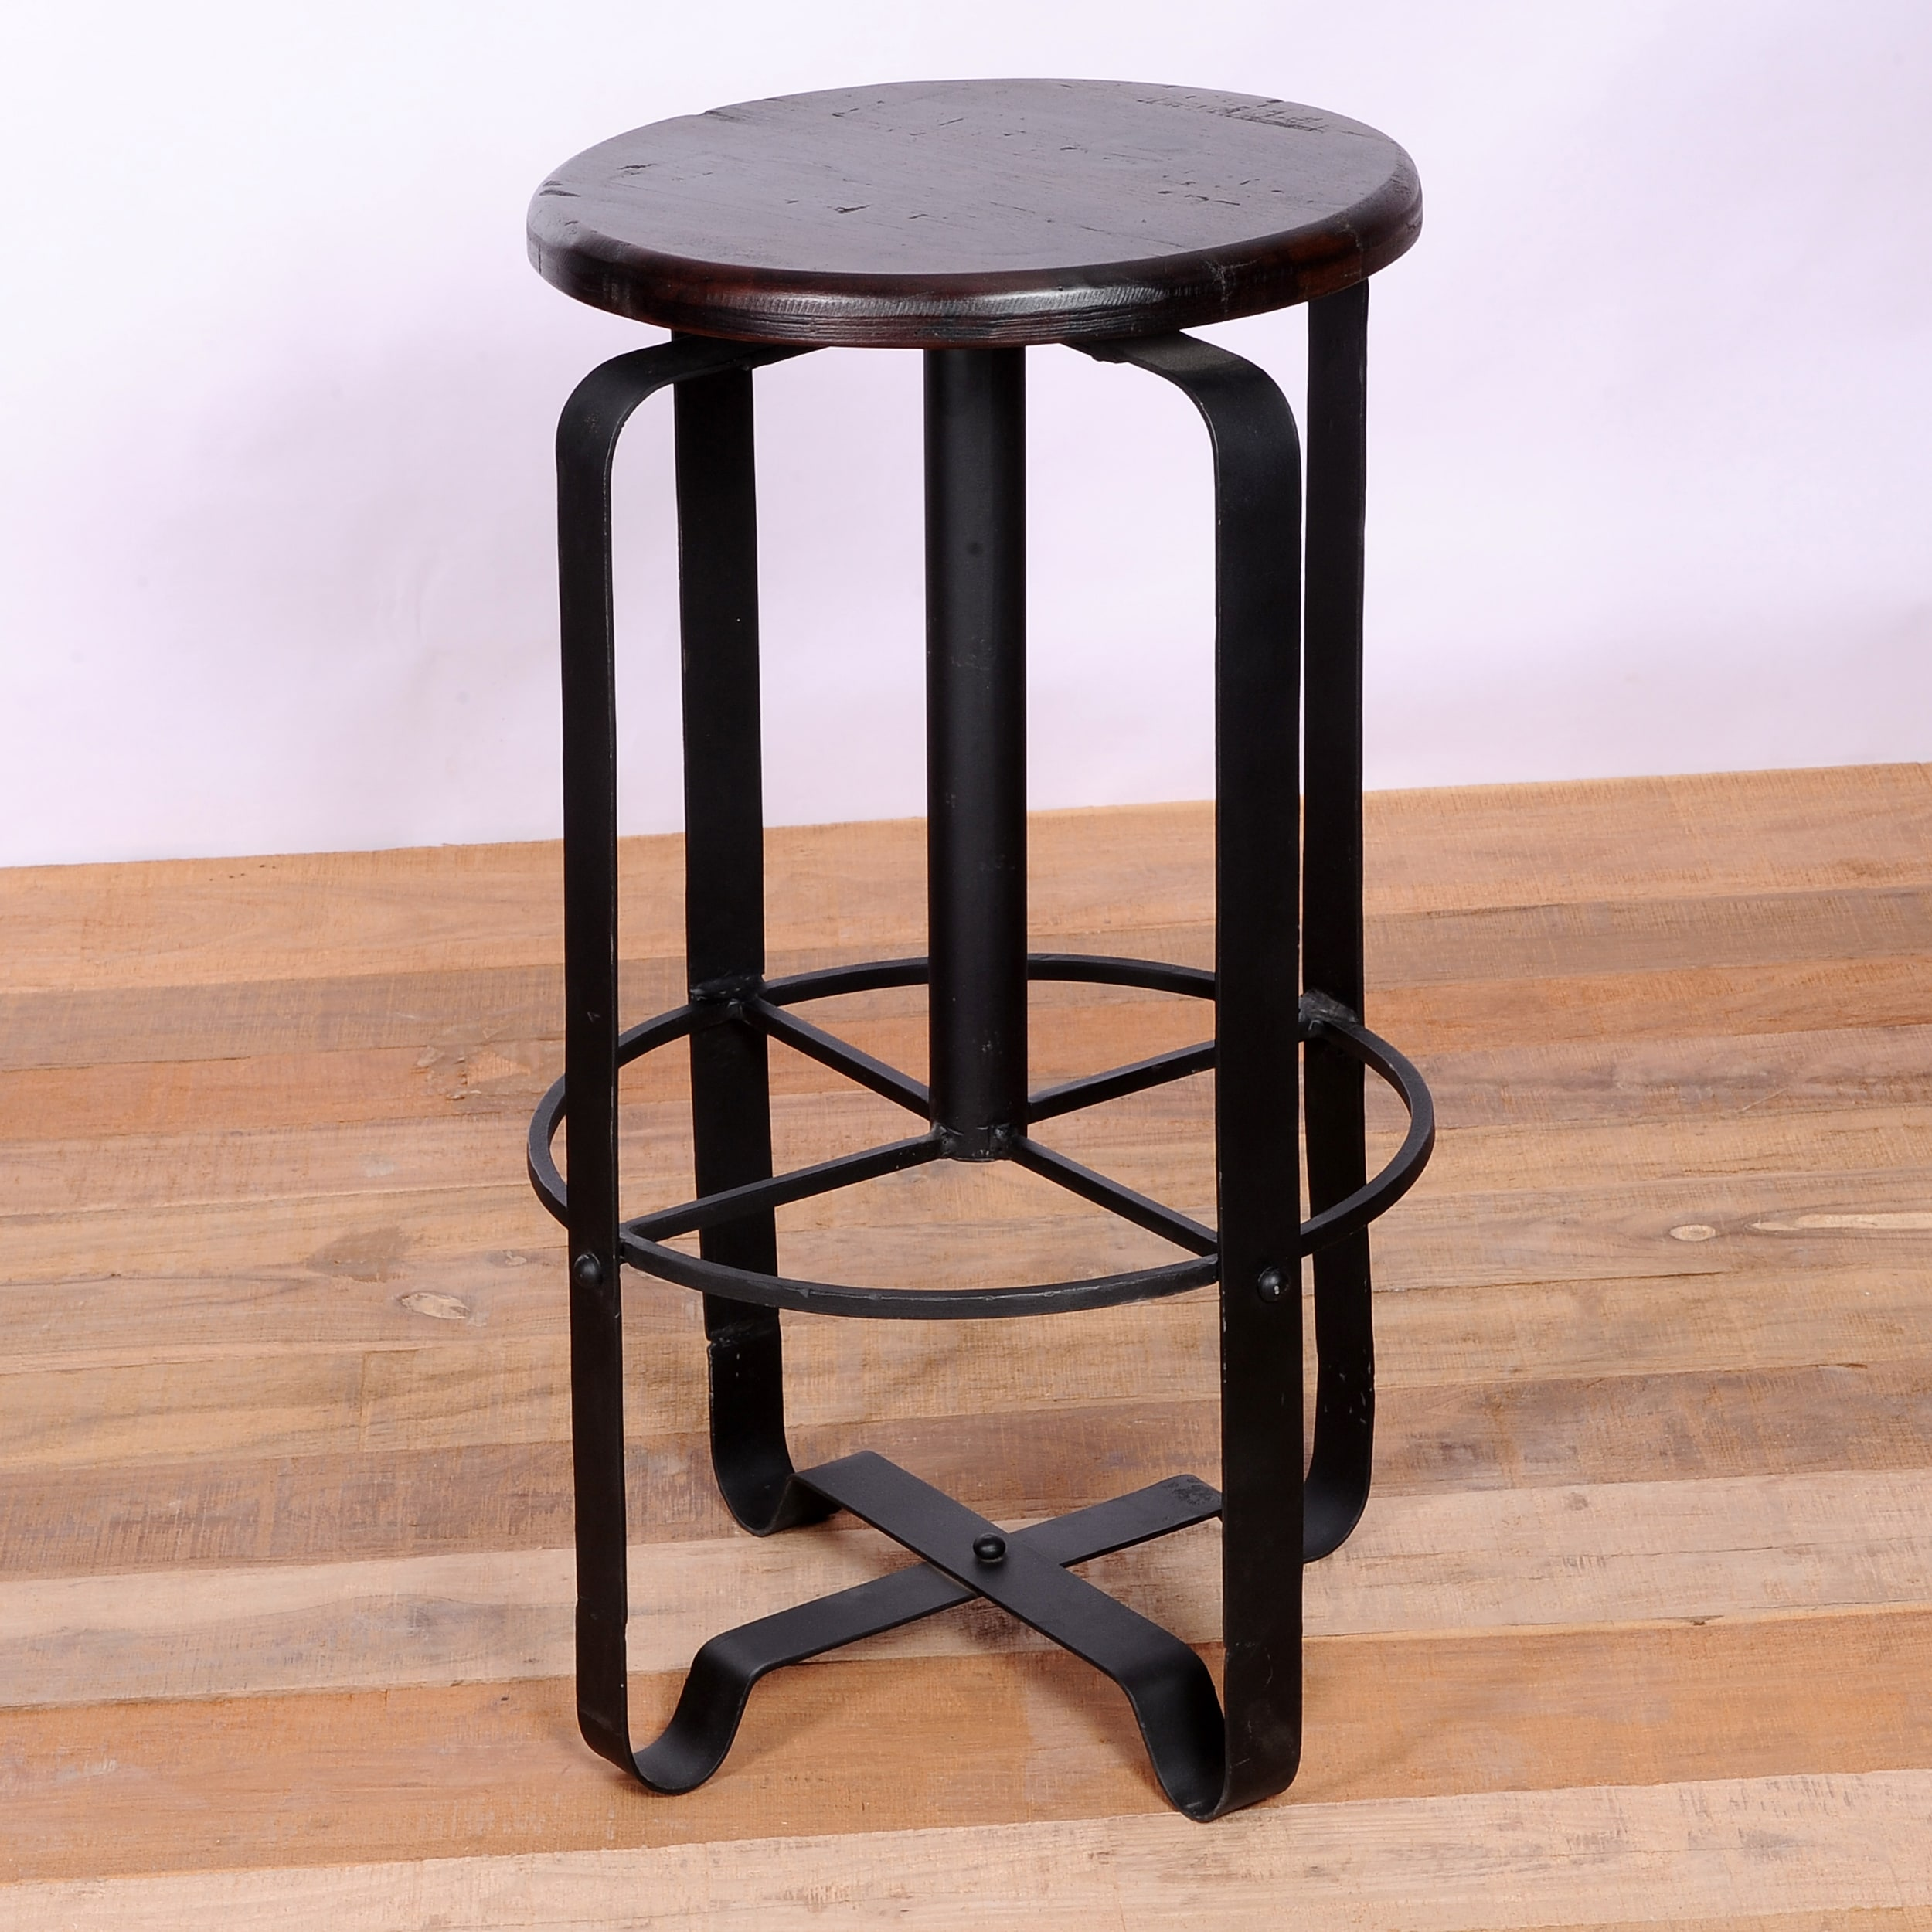 Bandhavgarh Iron and Wood Stool (India)